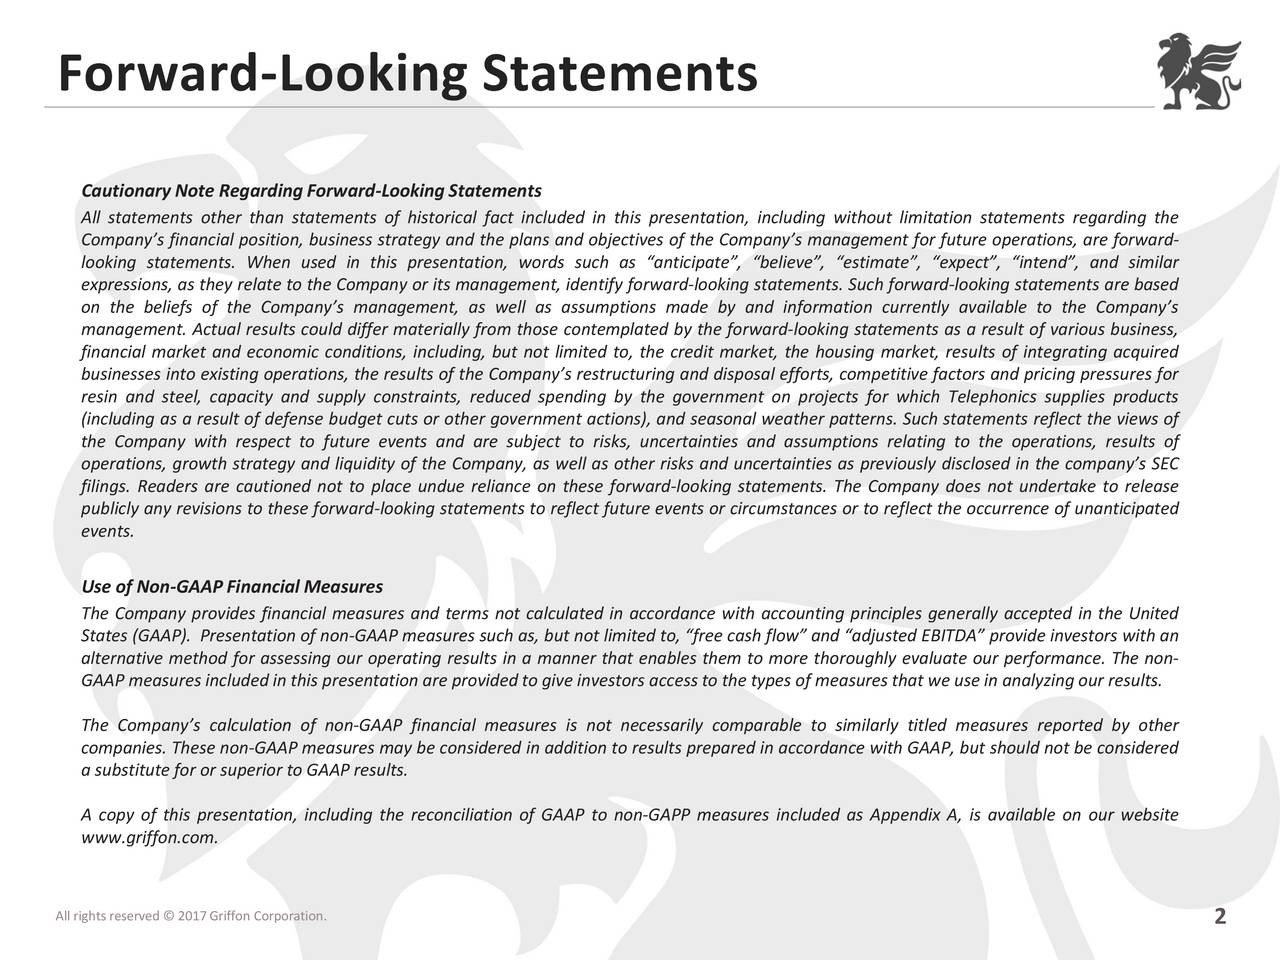 Cautionary Note Regarding Forward-LookingStatements All statements other than statements of historical fact included in this presentation, including without limitation statements regarding the Companys financial position, business strategy and the plans and objectives of the Companys management for future operations, are forward- looking statements. When used in this presentation, words such as anticipate, believe, estimate, expect, intend, and similar expressions, as they relate to the Company or its management, identify forward-looking statements. Such forward-looking statements are based on the beliefs of the Companys management, as well as assumptions made by and information currently available to the Companys management. Actual results could differ materially from those contemplated by the forward-looking statements as a result of various business, financial market and economic conditions, including, but not limited to, the credit market, the housing market, results of integrating acquired businesses into existing operations, the results of the Companys restructuring and disposal efforts, competitive factors and pricing pressures for resin and steel, capacity and supply constraints, reduced spending by the government on projects for which Telephonics supplies products (including as a result of defense budget cuts or other government actions), and seasonal weather patterns. Such statements reflect the views of the Company with respect to future events and are subject to risks, uncertainties and assumptions relating to the operations, results of operations, growth strategy and liquidity of the Company, as well as other risks and uncertainties as previously disclosed in the companys SEC filings. Readers are cautioned not to place undue reliance on these forward-looking statements. The Company does not undertake to release publicly any revisions to these forward-looking statements to reflect future events or circumstances or to reflect the occurrence of unanticipat